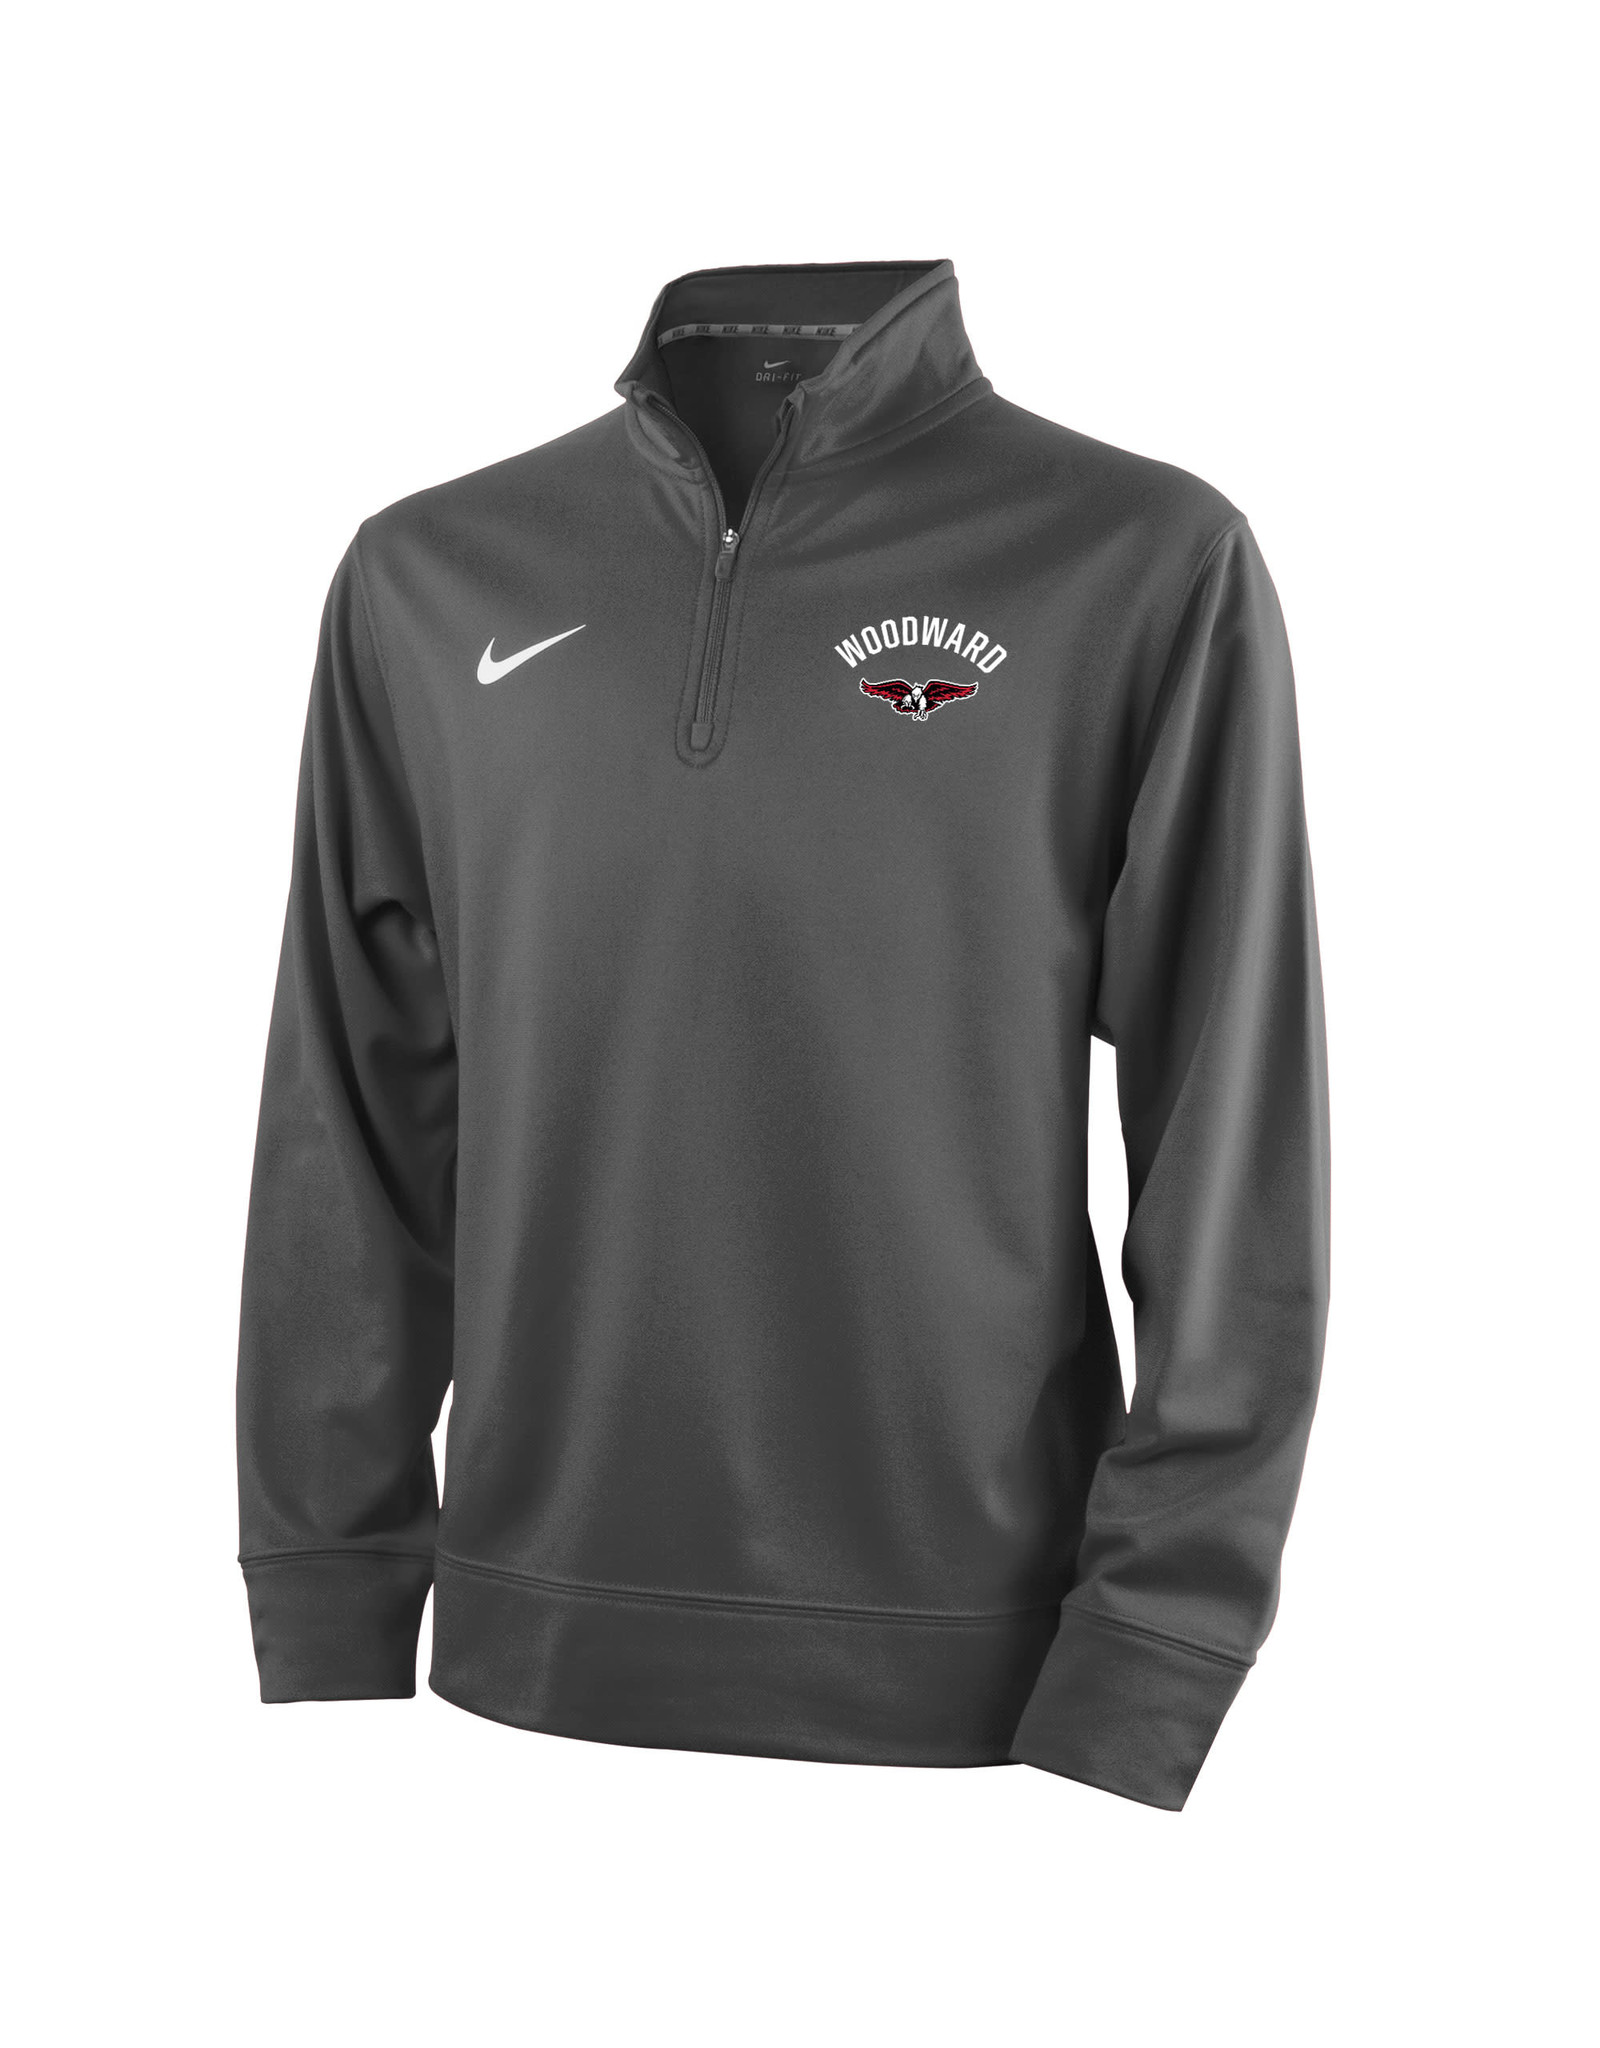 NIKE Youth Therma 1/4 Zip Pullover in Anthracite